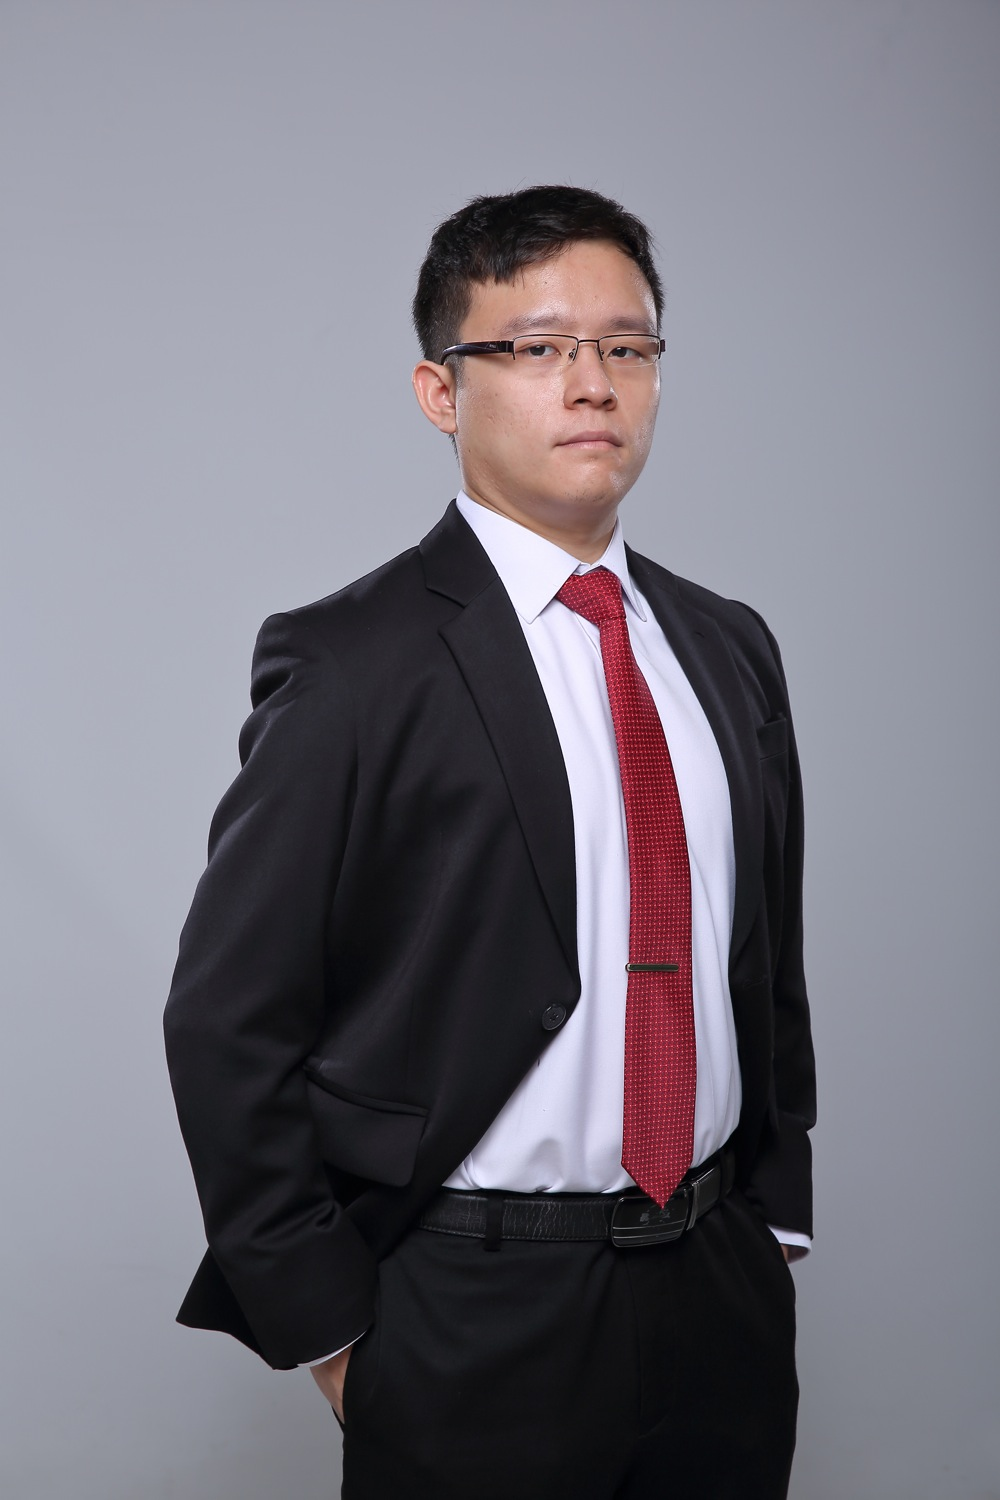 Corporate profile shot